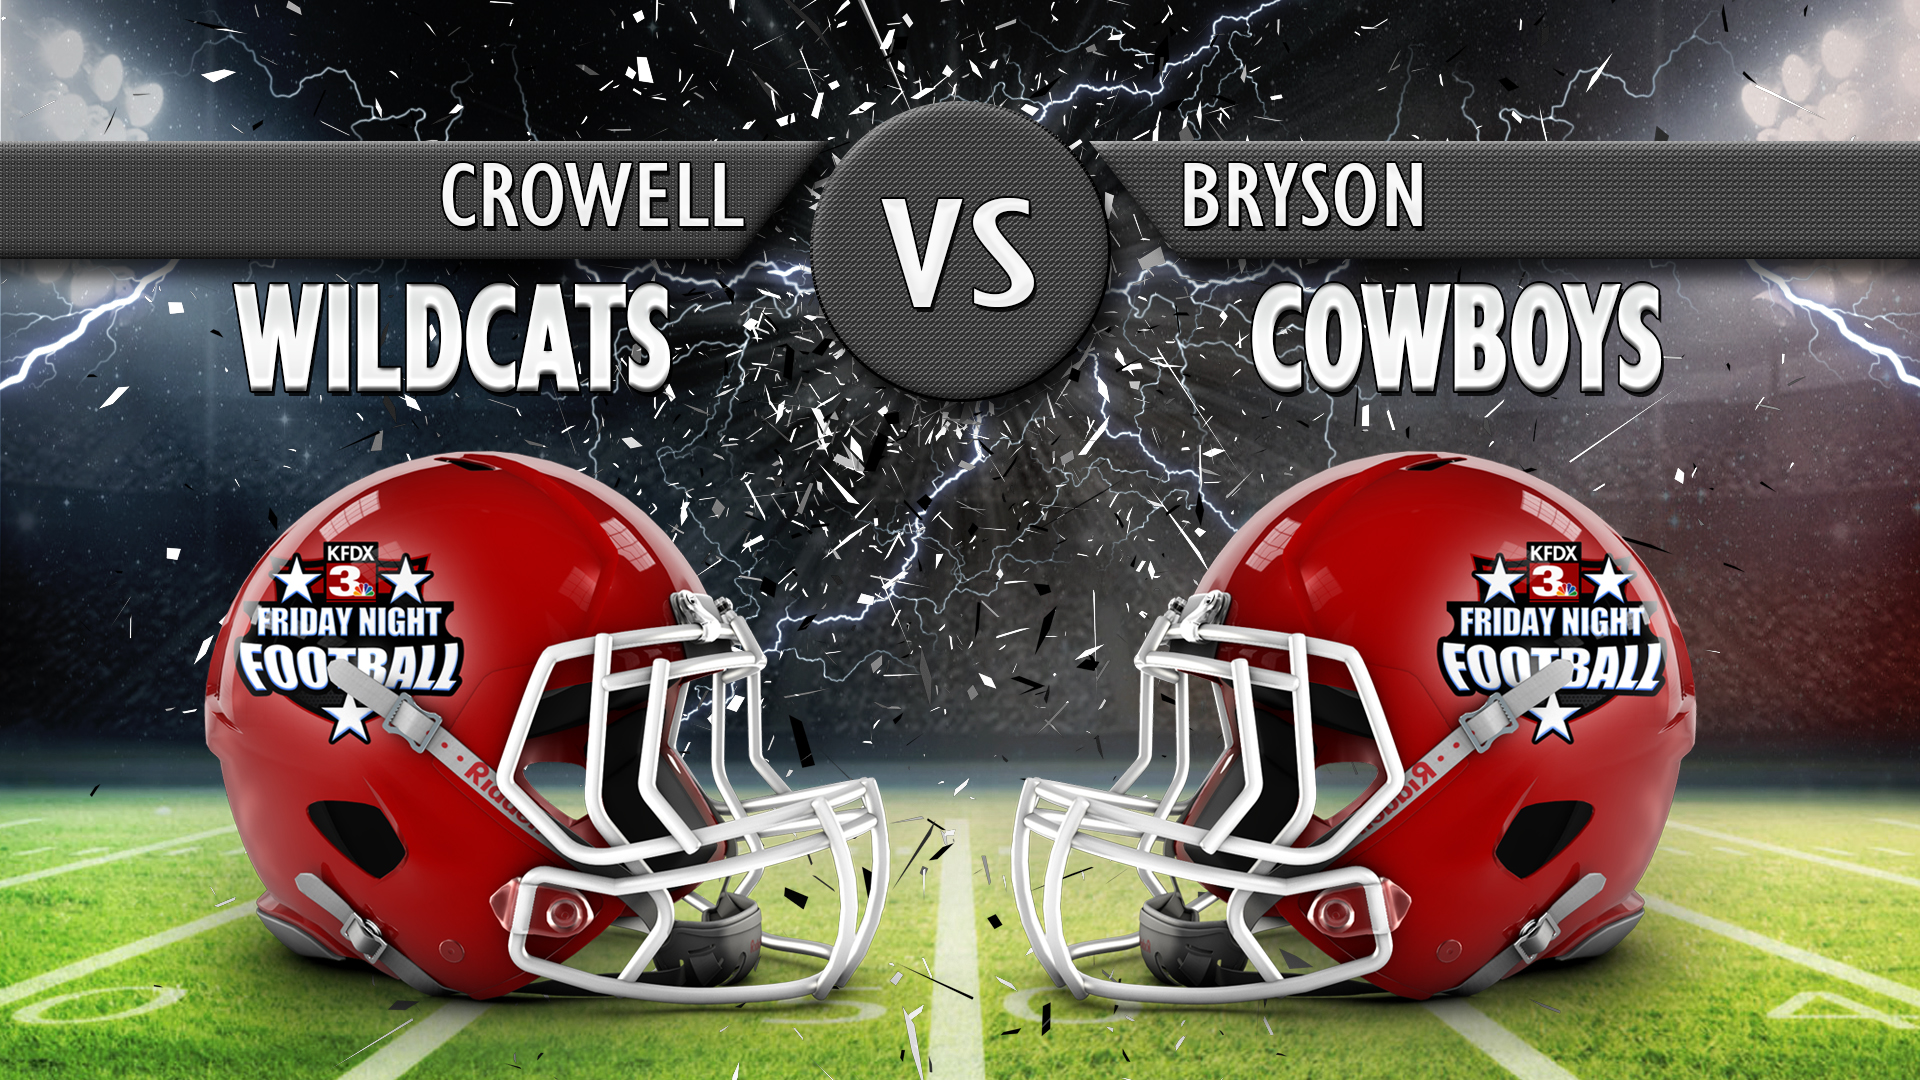 CROWELL VS BRYSON_1538781439501.jpg.jpg